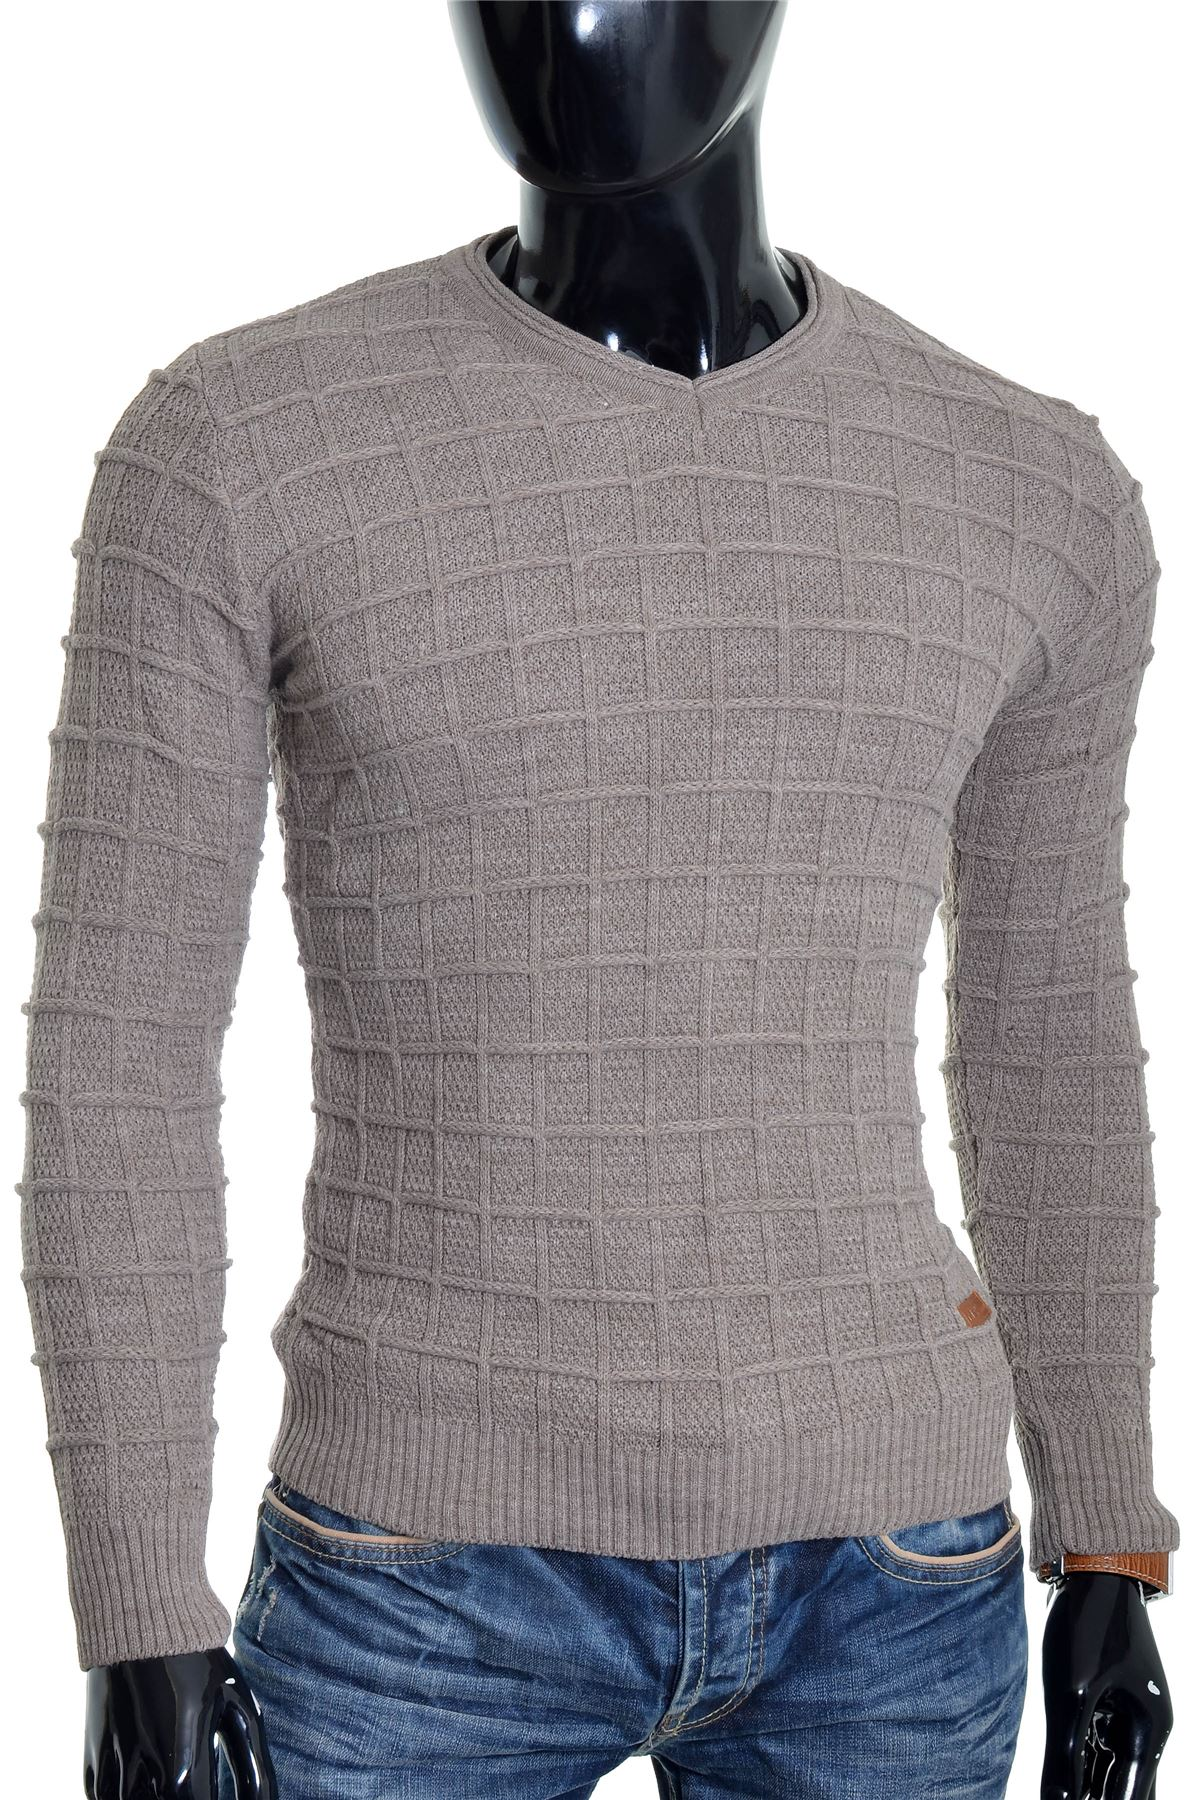 D-amp-R-Men-039-s-Wool-Jumper-Knit-Smart-Long-Sleeve-Sweater-Crew-Neck-Check-Top-Slim thumbnail 3